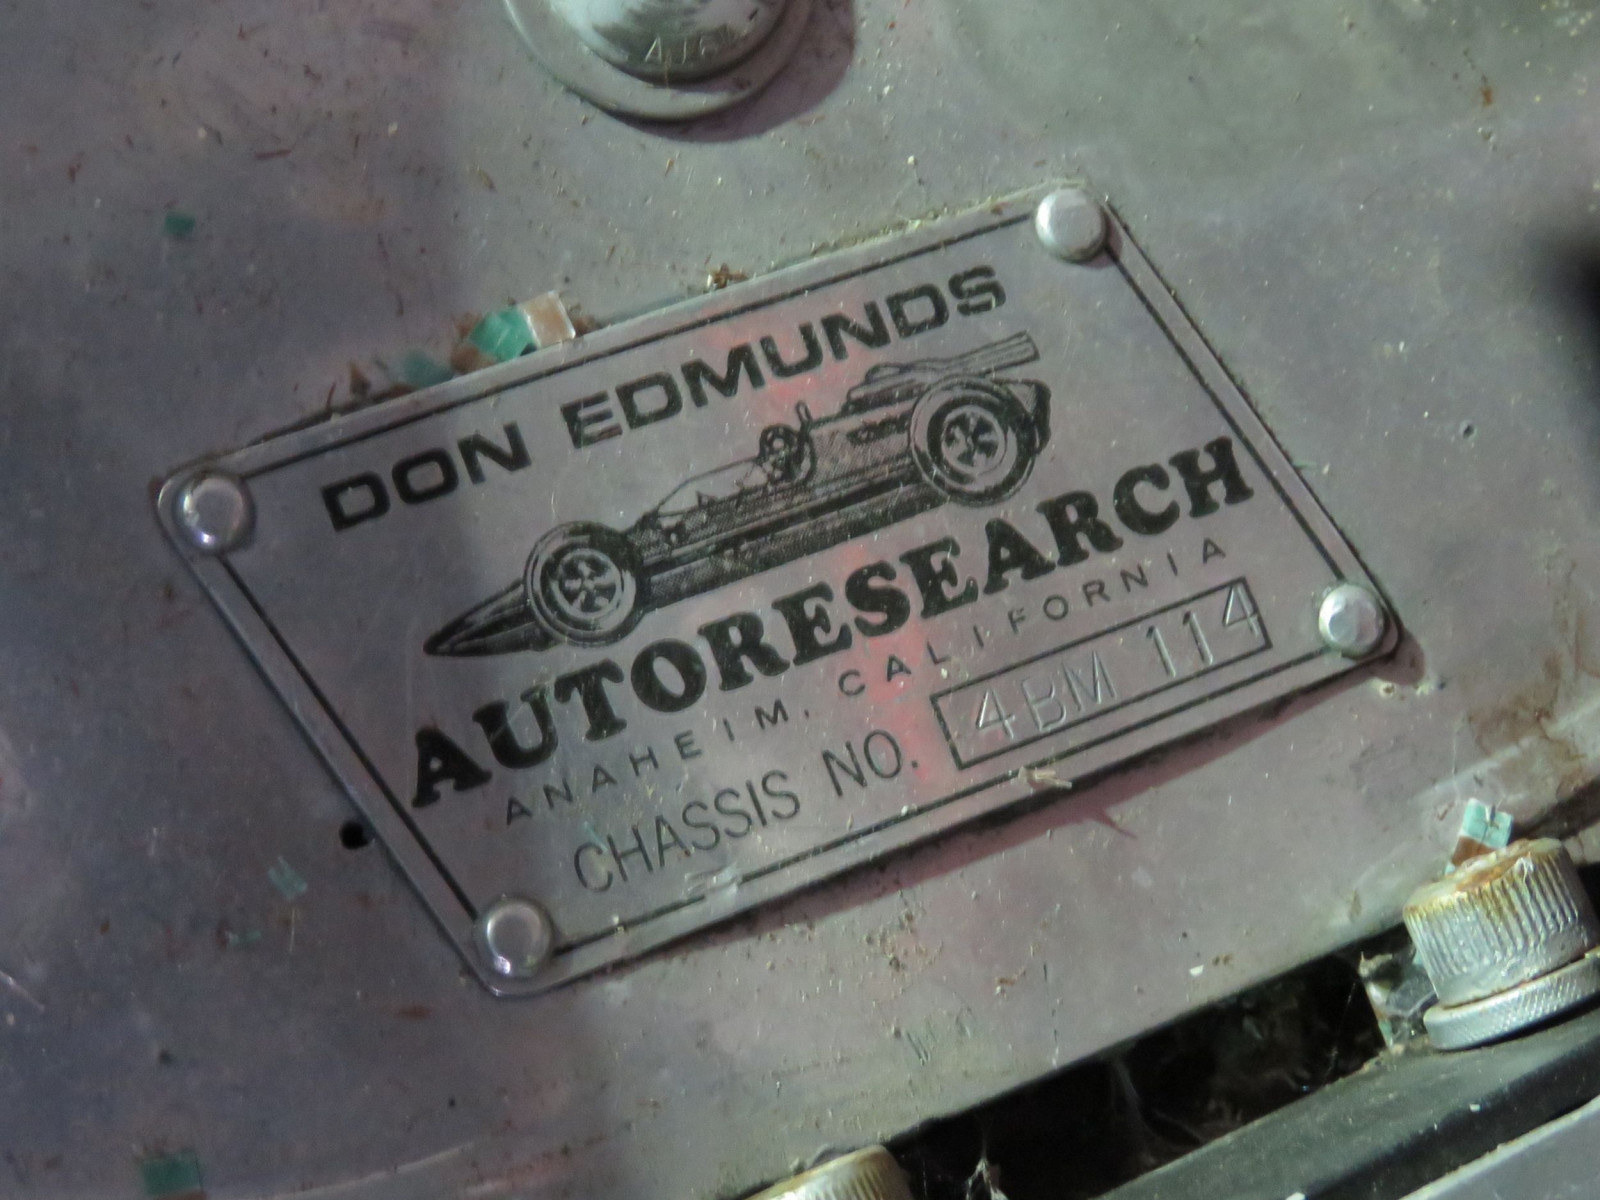 1970 Edmunds Sesco Midget Race Cart - Image 7